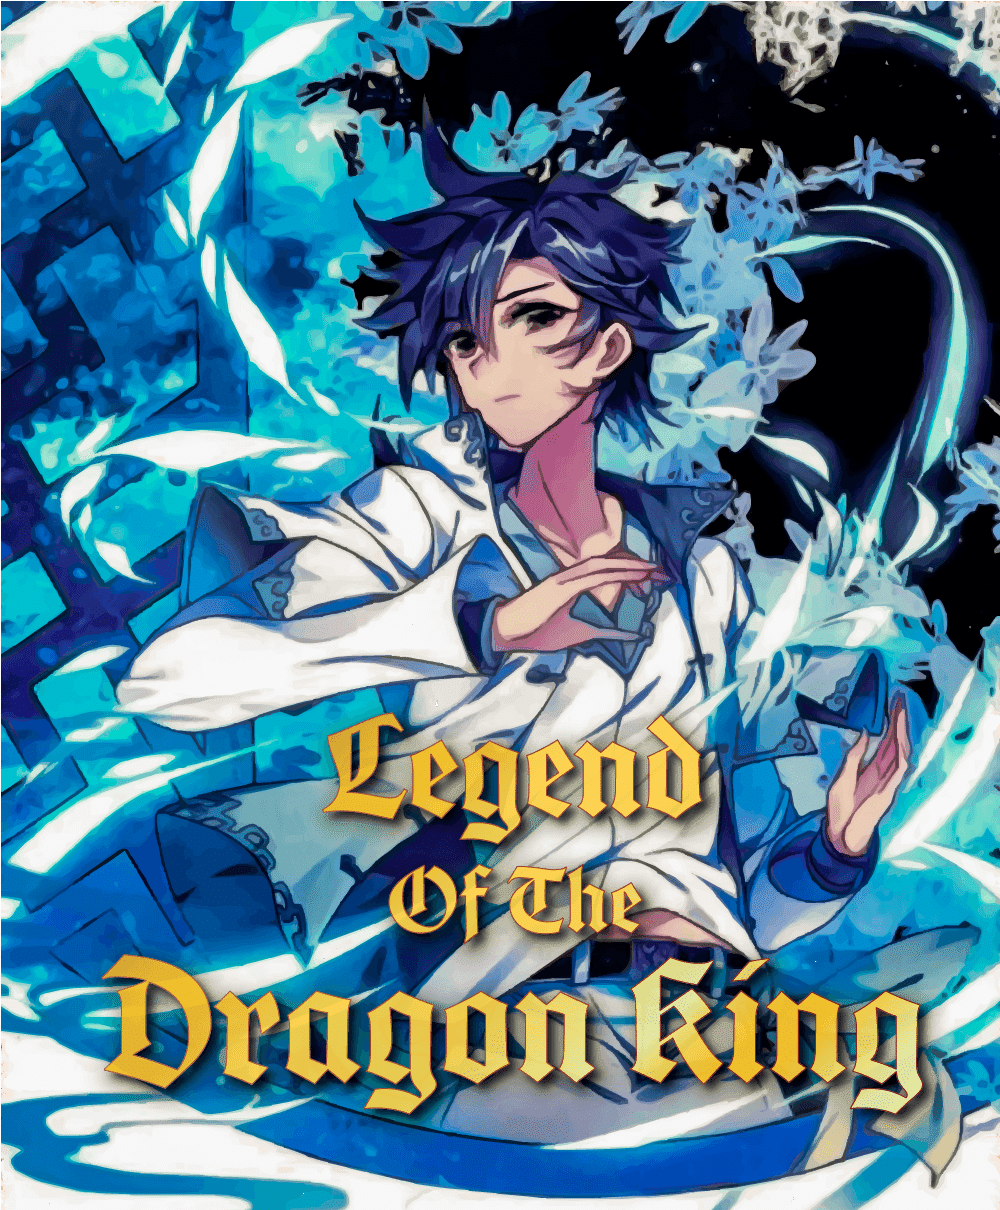 Read Soul Land 3 The Legend Of The Dragon King Novel Super Novel Dragon King Novels Legend